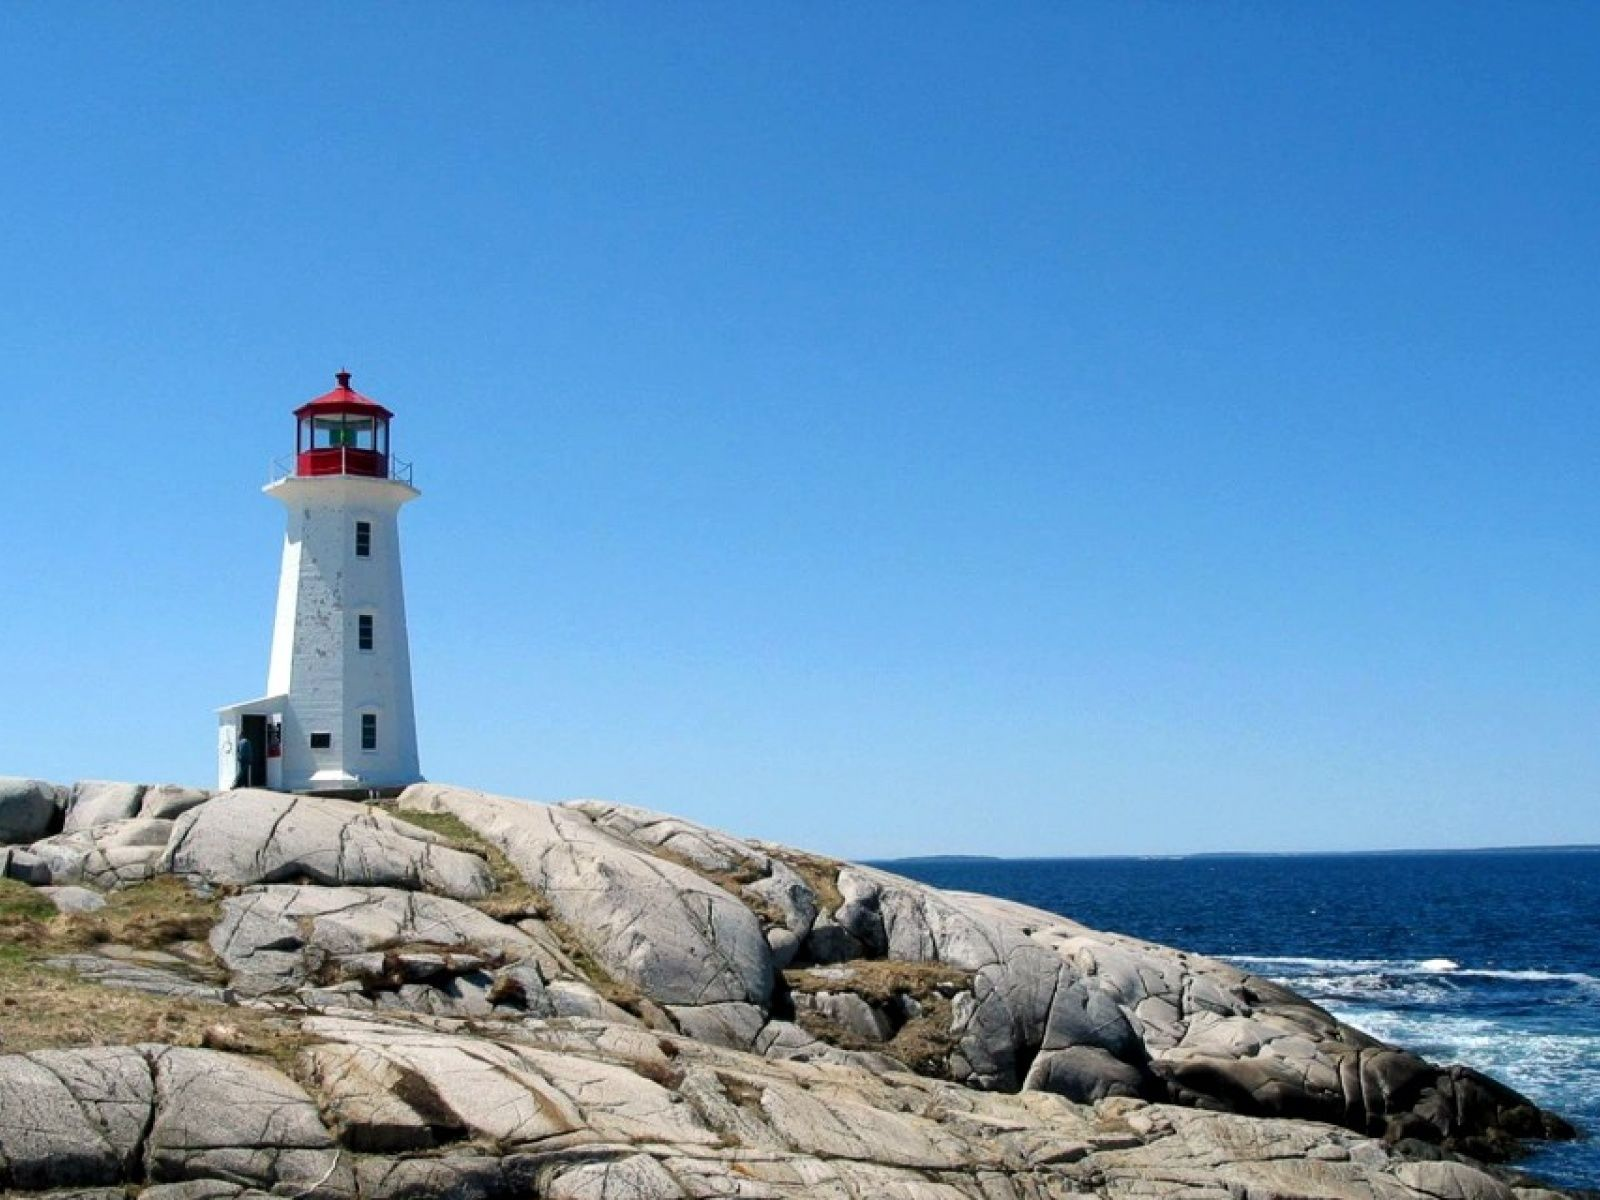 Light Tower WallpapersNova Scotia Wallpapers Pictures Download 1600x1200